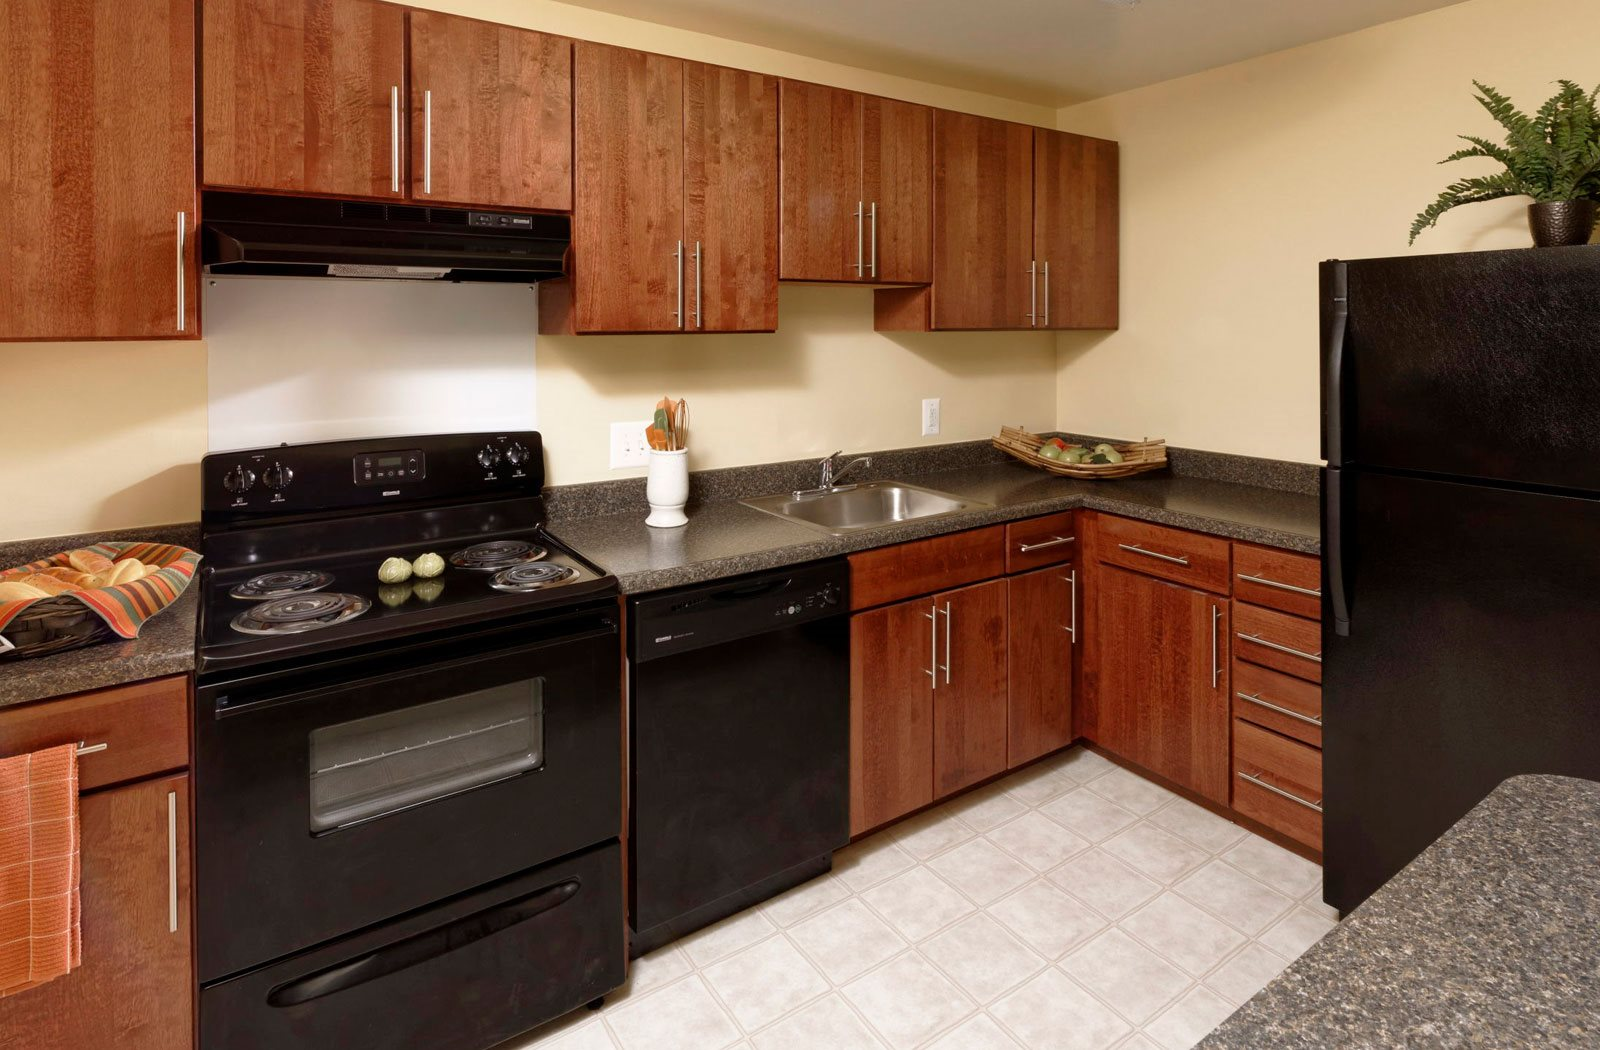 Fully equipped kitchen at Kenilworth at Charles Apartments, Towson, MD, 21204